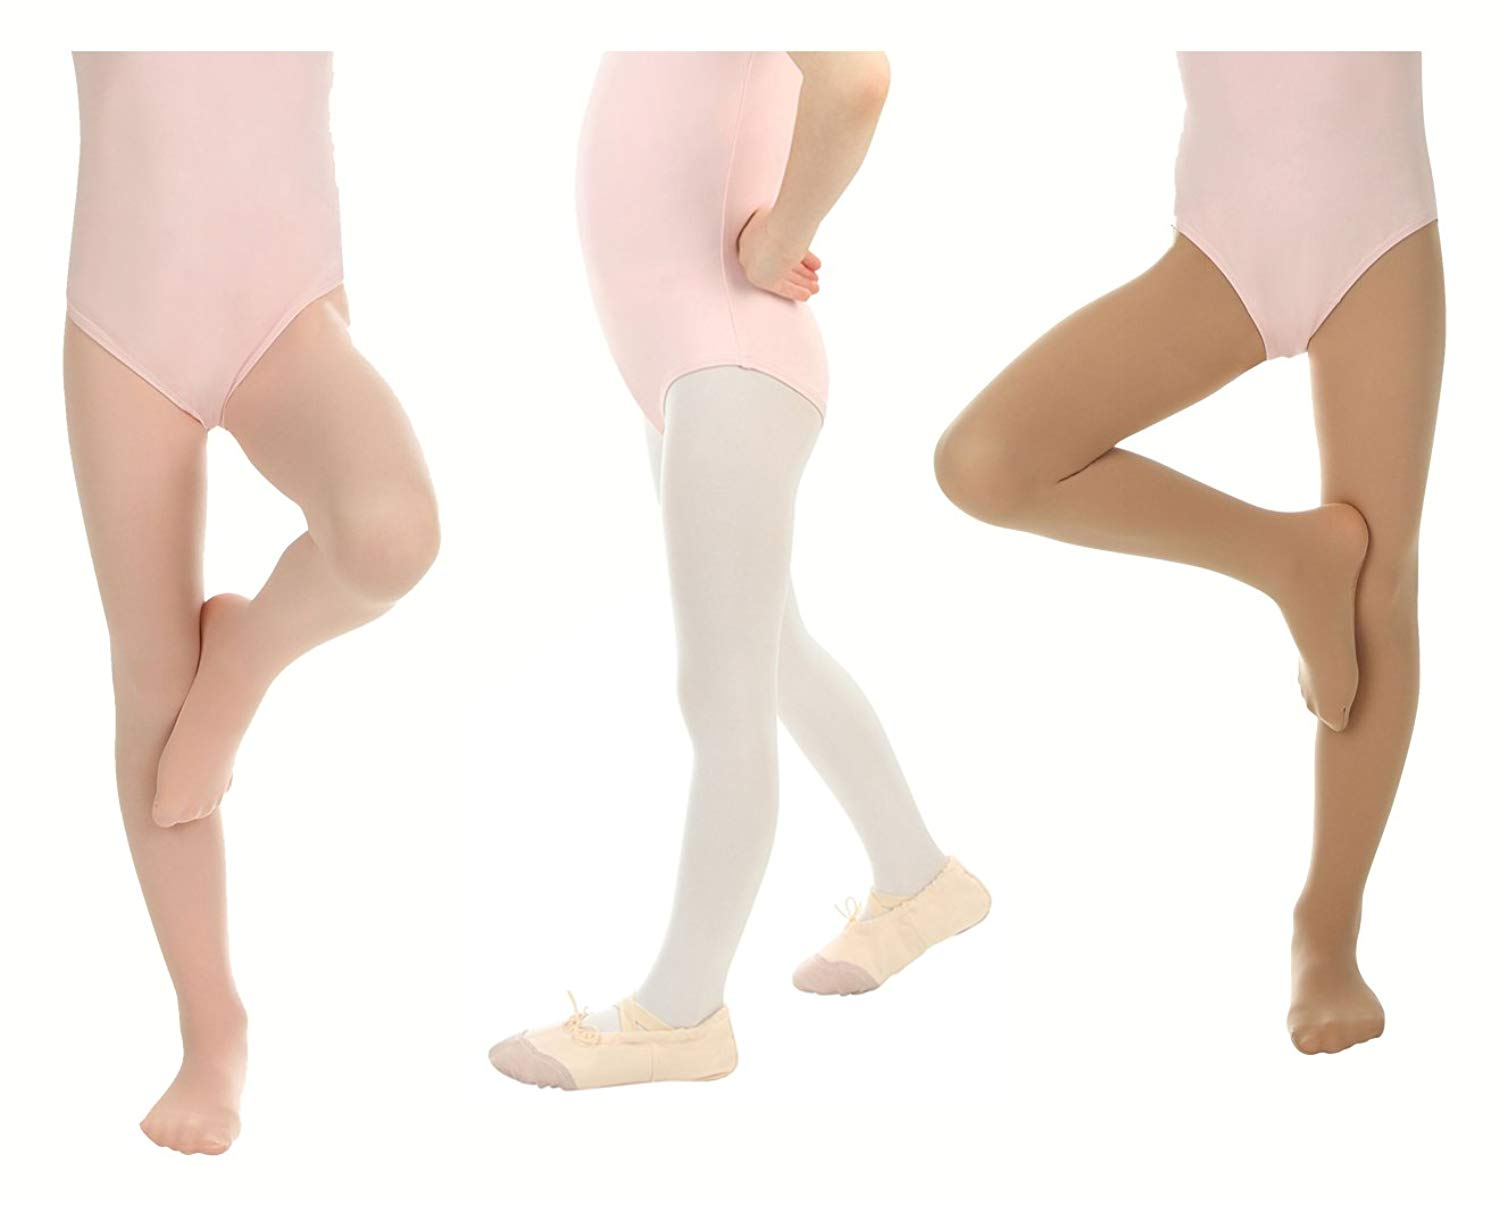 d9602eaae4828 Get Quotations · Silky Toes Girls' Ballet Dance Transition Tights  Ultra-soft Convertible Pro (2 Pack